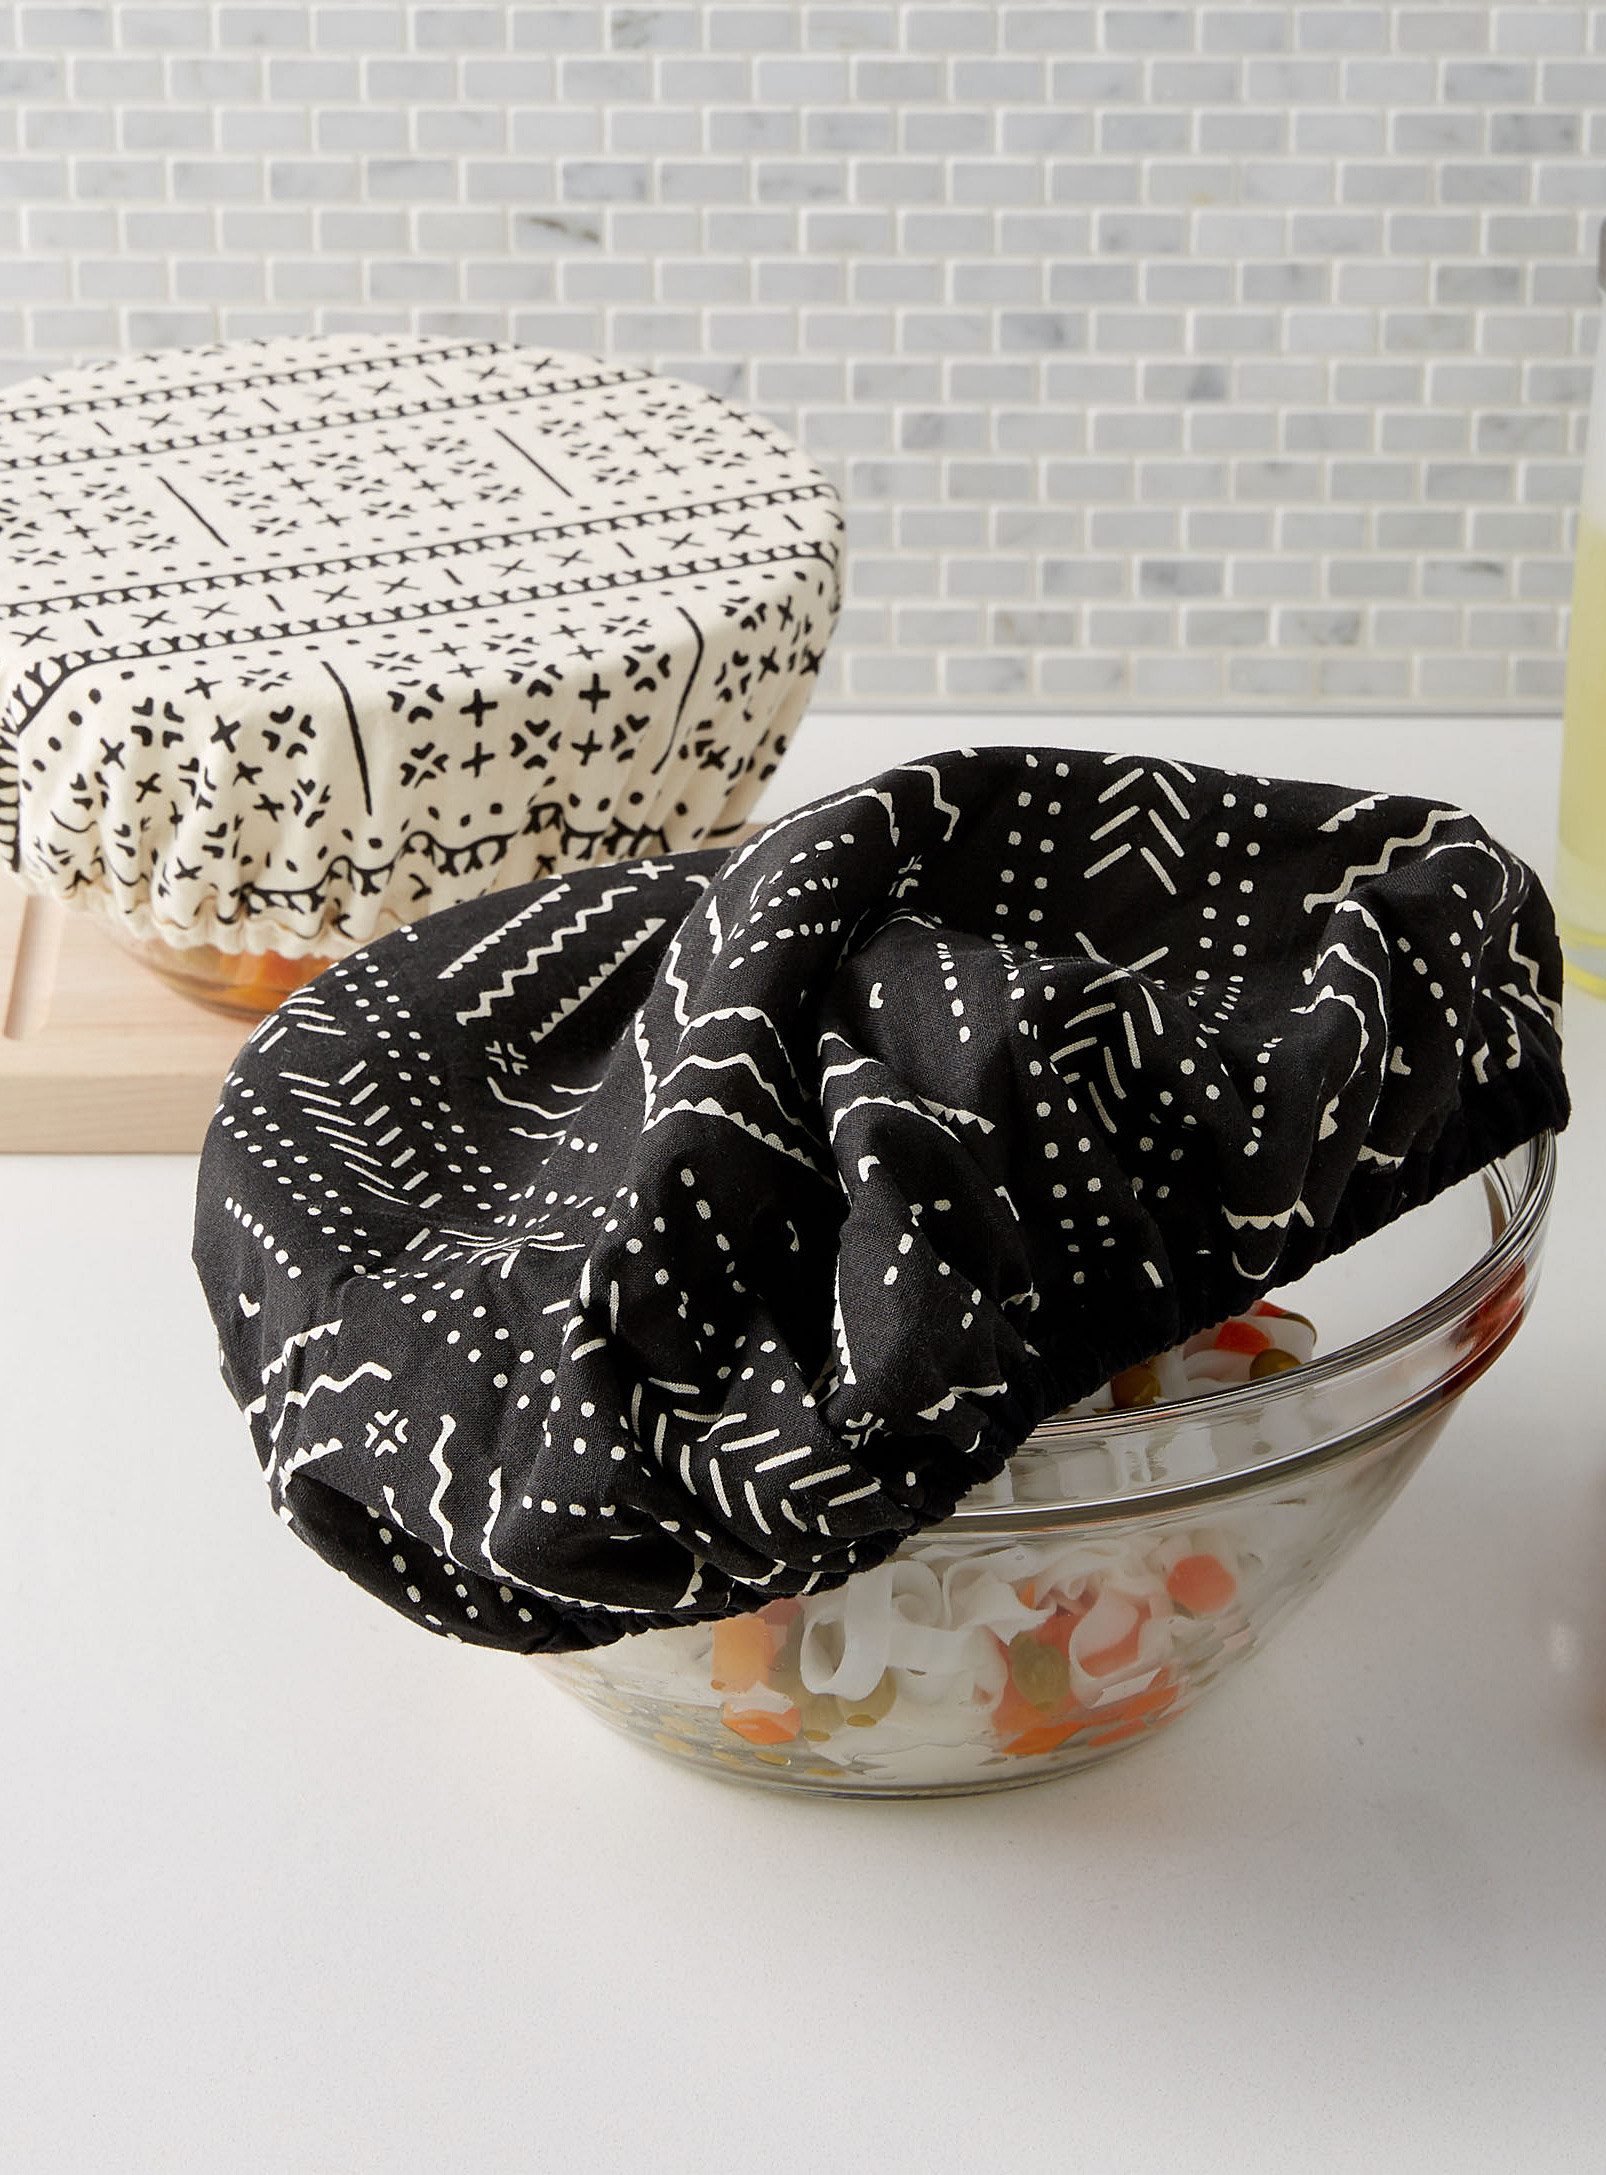 Two bowl covers over a bowl